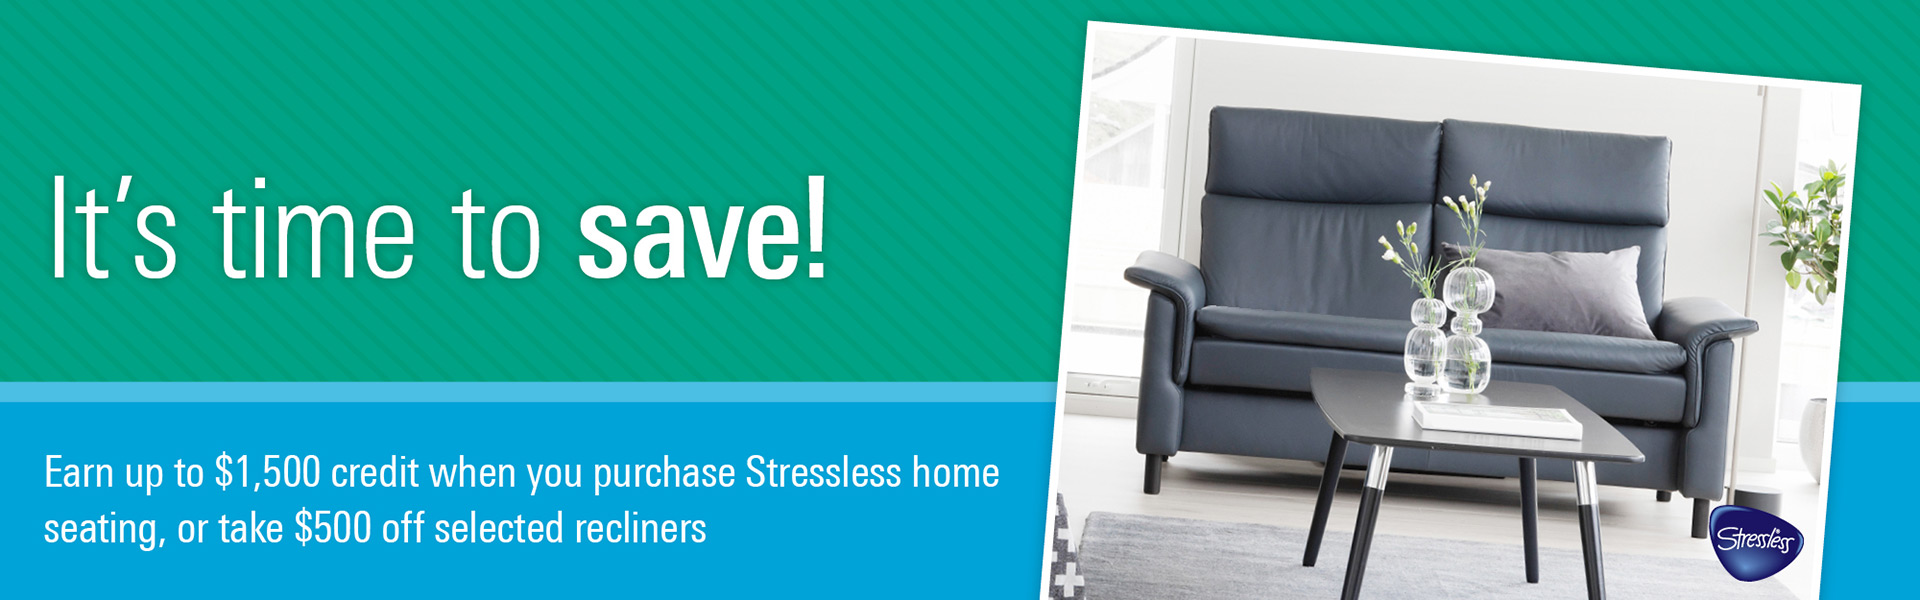 Stressless Outlet On Sale Stressless Seating